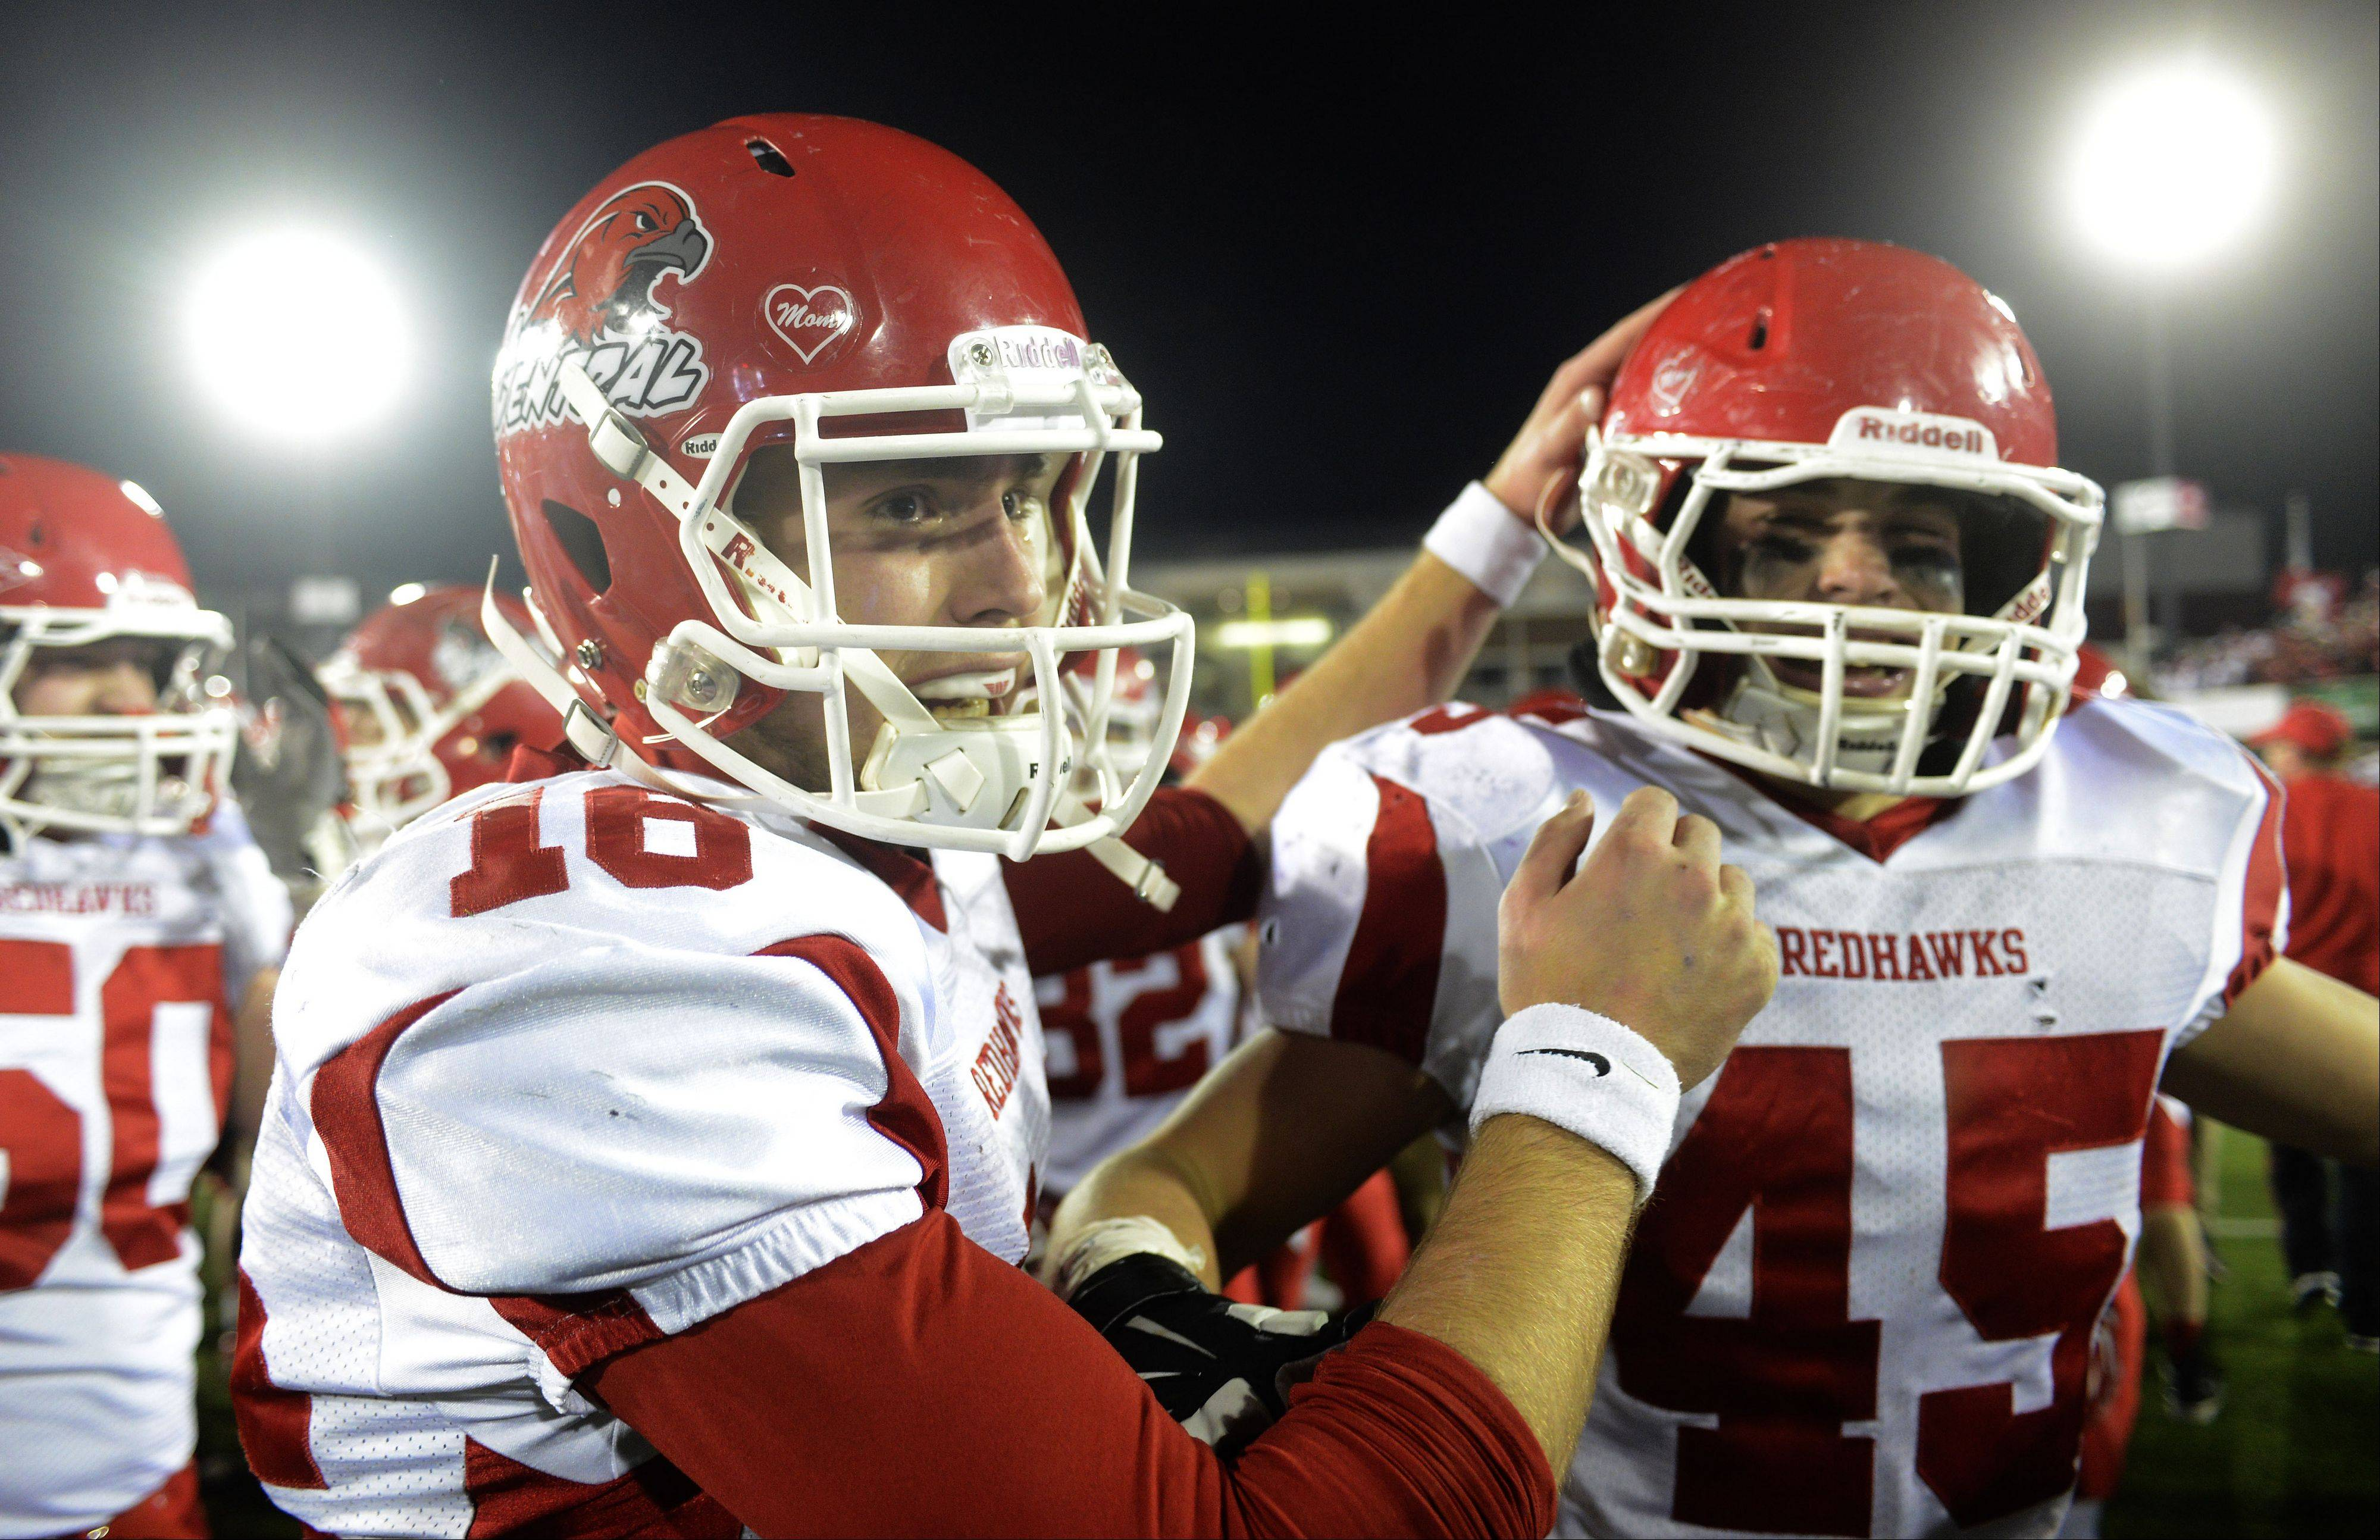 Naperville Central's Kyle Kolbe, left, and Jack Woolridge celebrate their team's victory over Loyola during the class 8A football final in DeKalb Saturday.